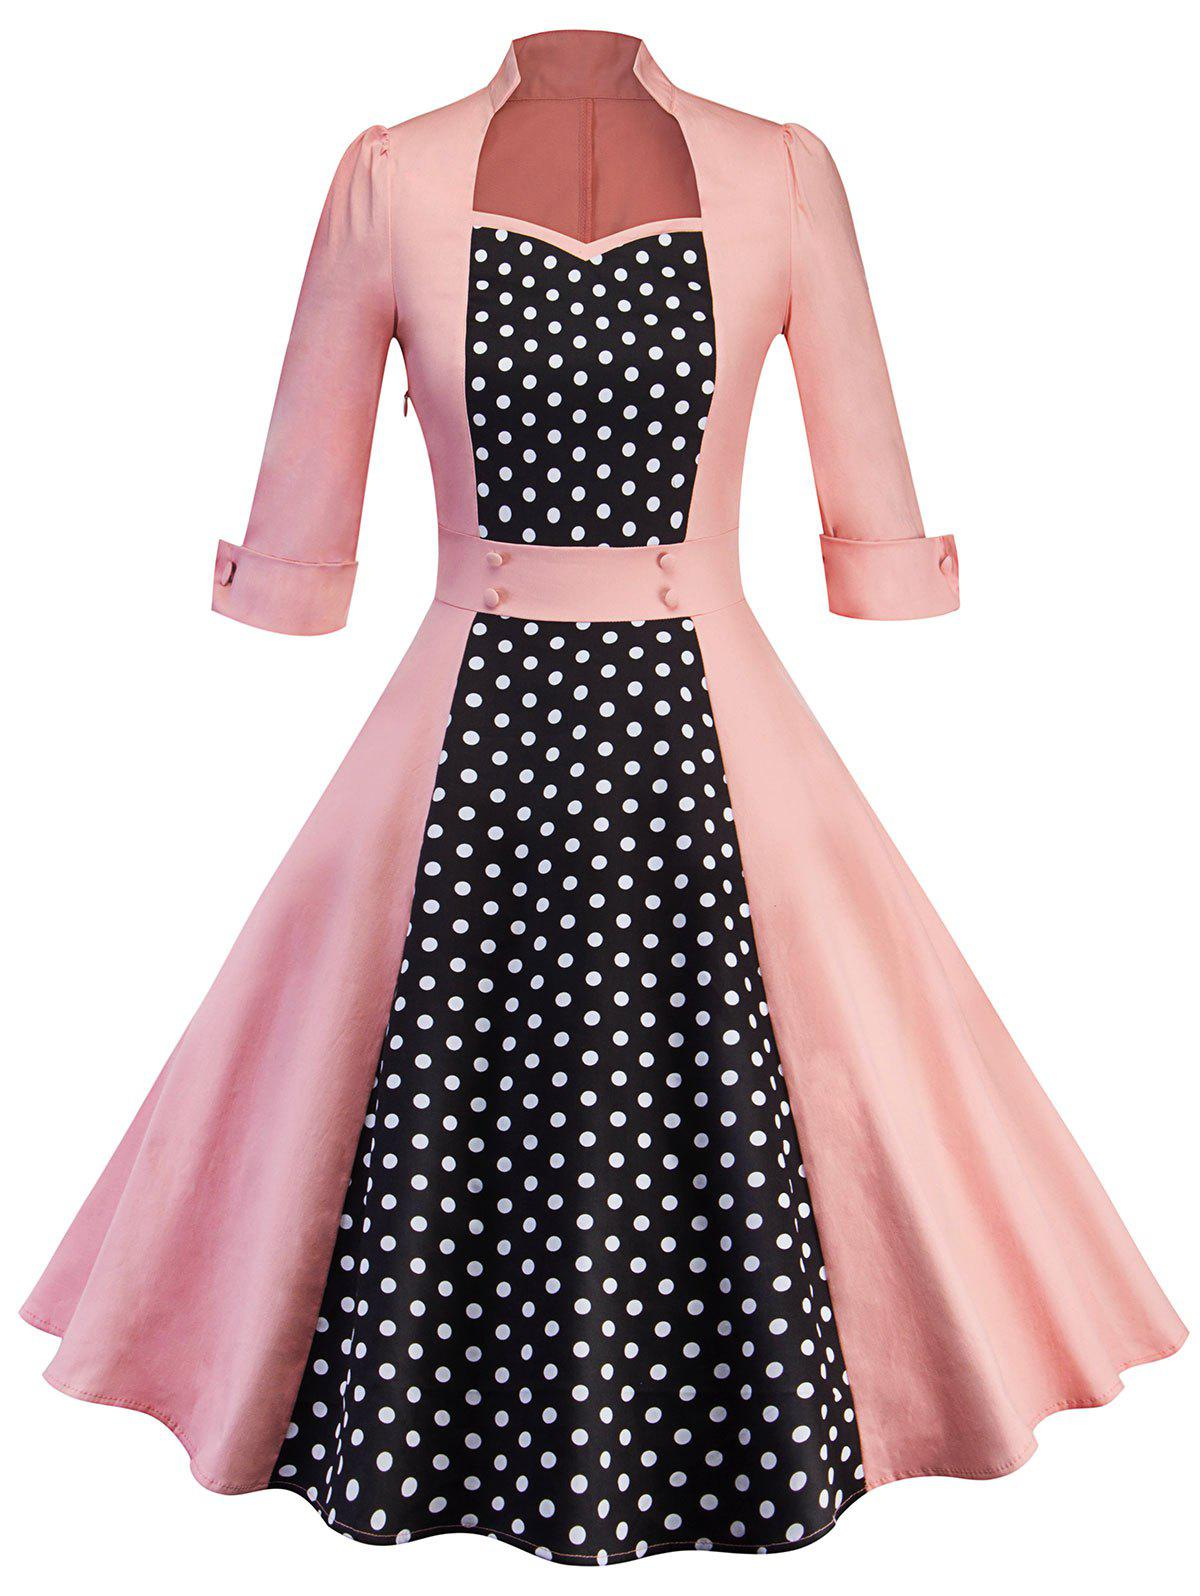 Sweetheart Neck Polka Dot Insert Vintage Dress - PINK S